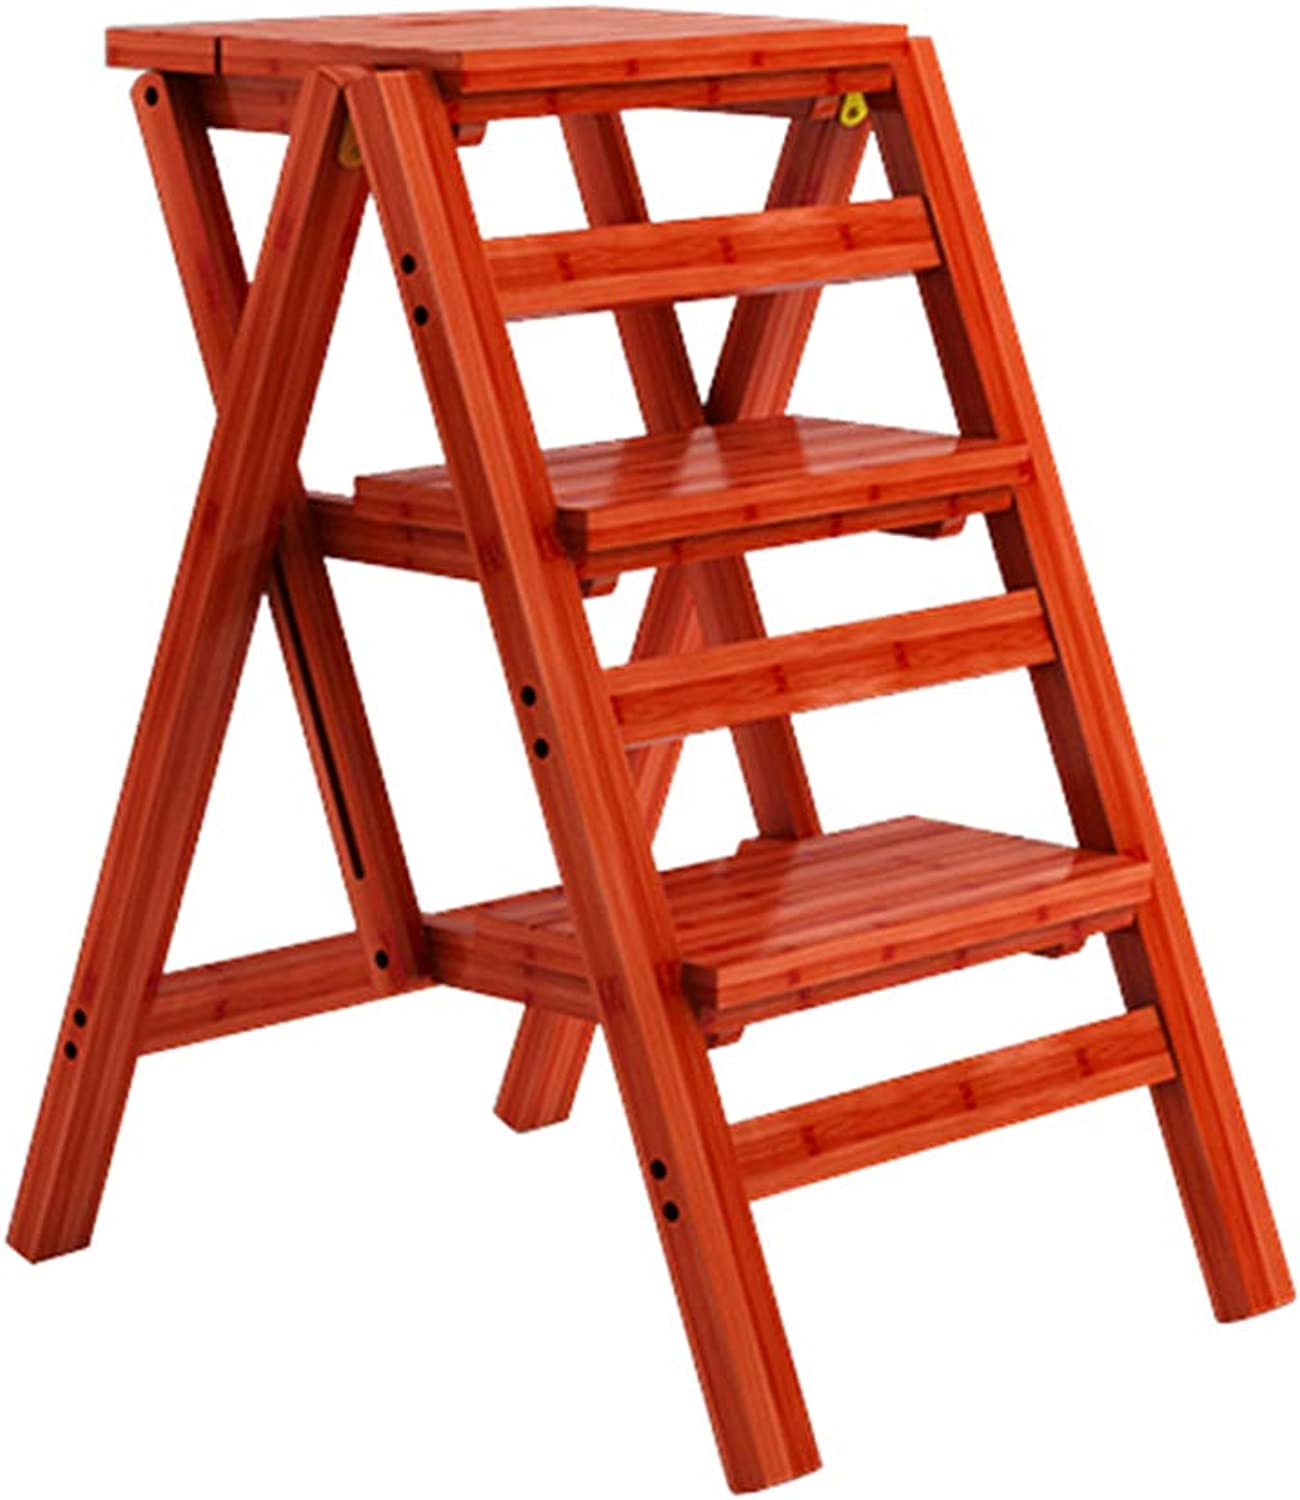 Folding Steps Stool Multifunction Ladder Chair Stool Bamboo Wooden Foldable Shelving Staircase Chair Home Library 3 Steps 150kg Capacity - Brown